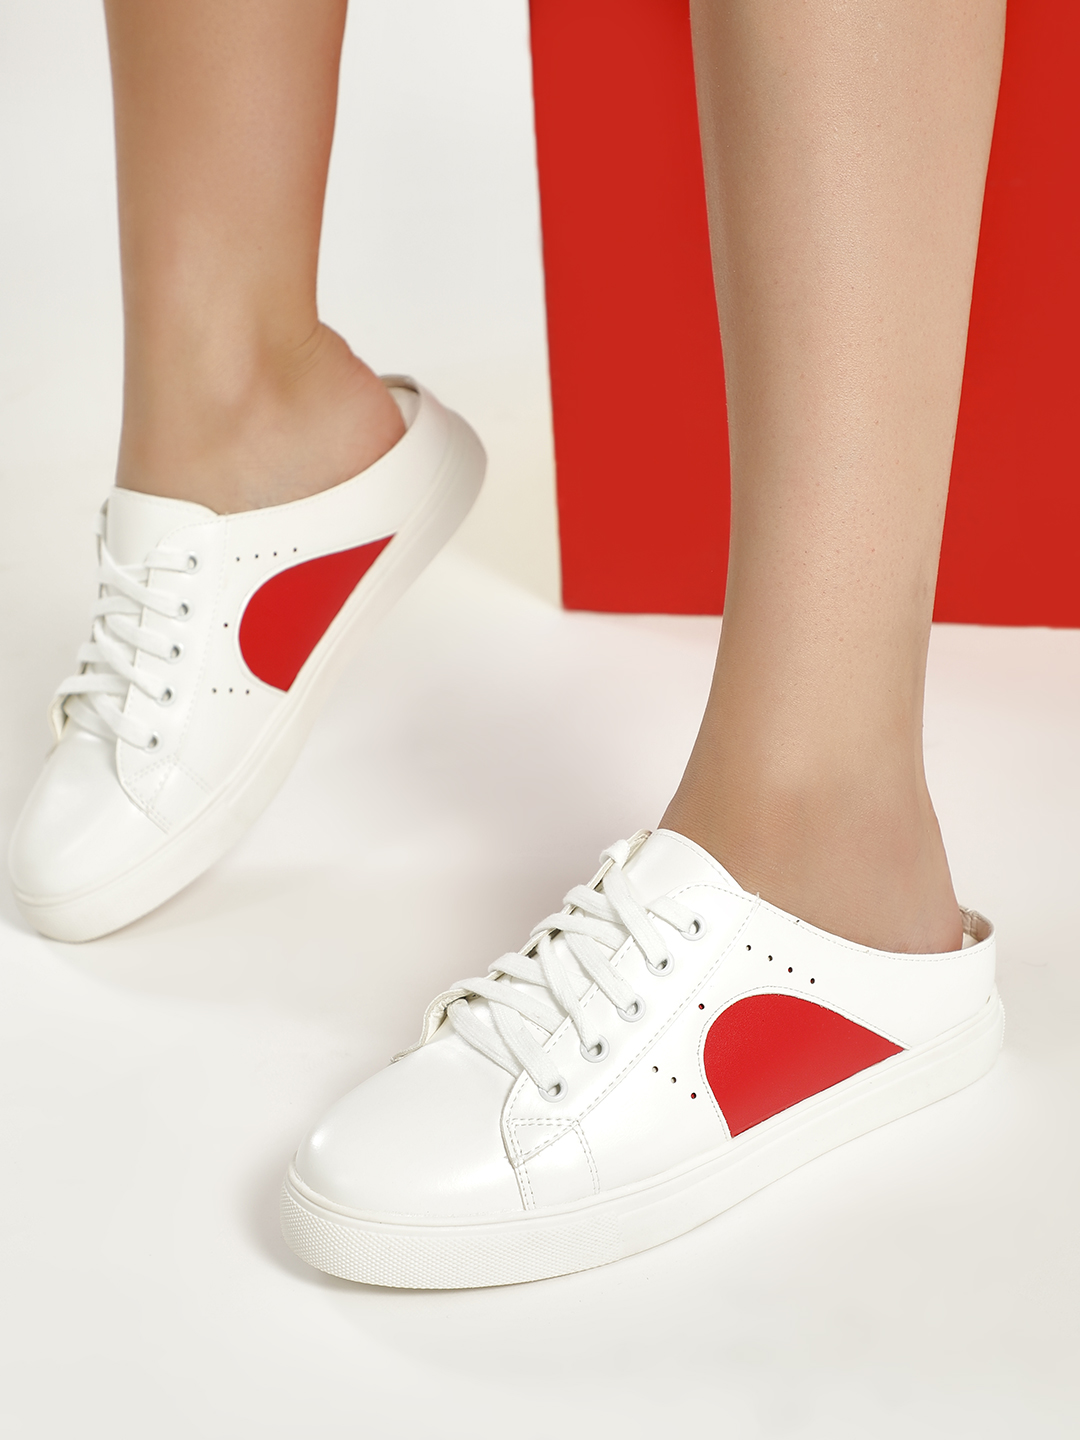 My Foot Couture White/Red Contrast Panel Slide Sneakers 1